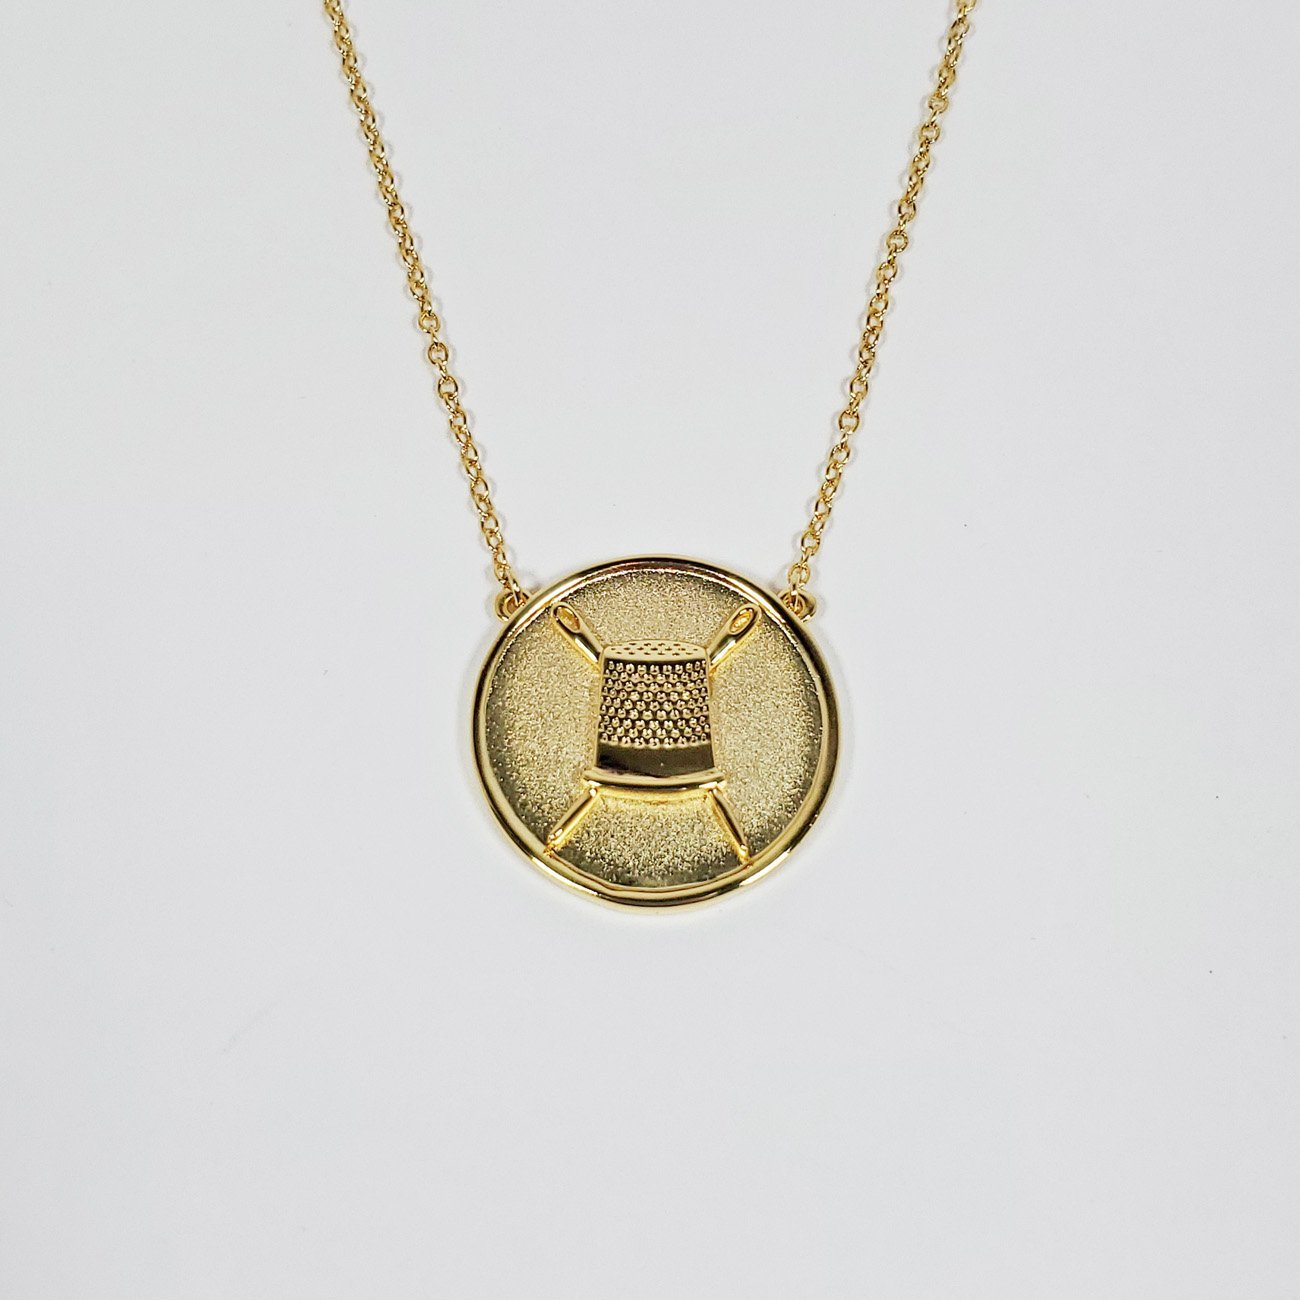 Thimble Coin Pendant Necklace Gold from the Quilt Spot